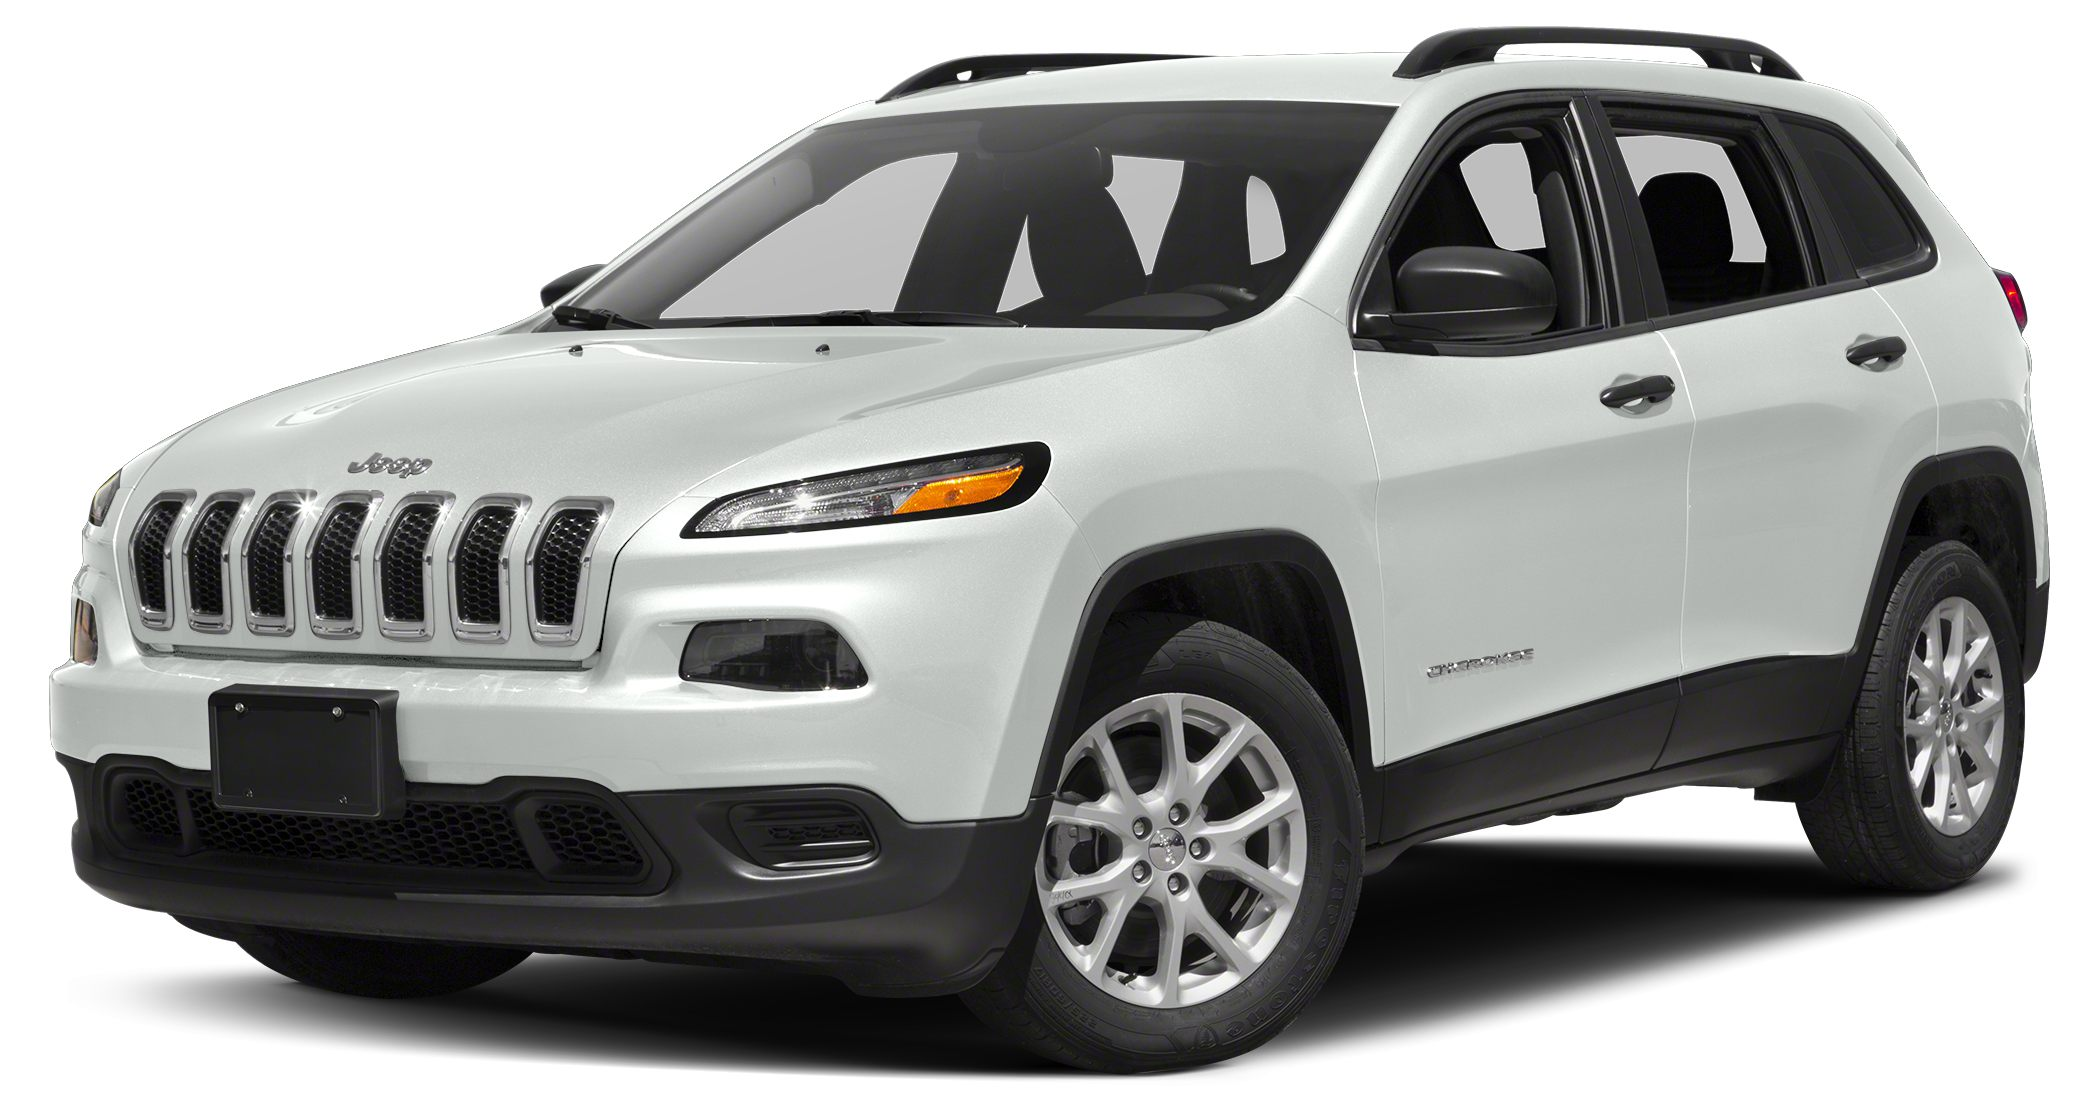 2017 Jeep Cherokee Sport CARFAX One-Owner Clean CARFAX Bright White Clearcoat 2017 Jeep Cherokee